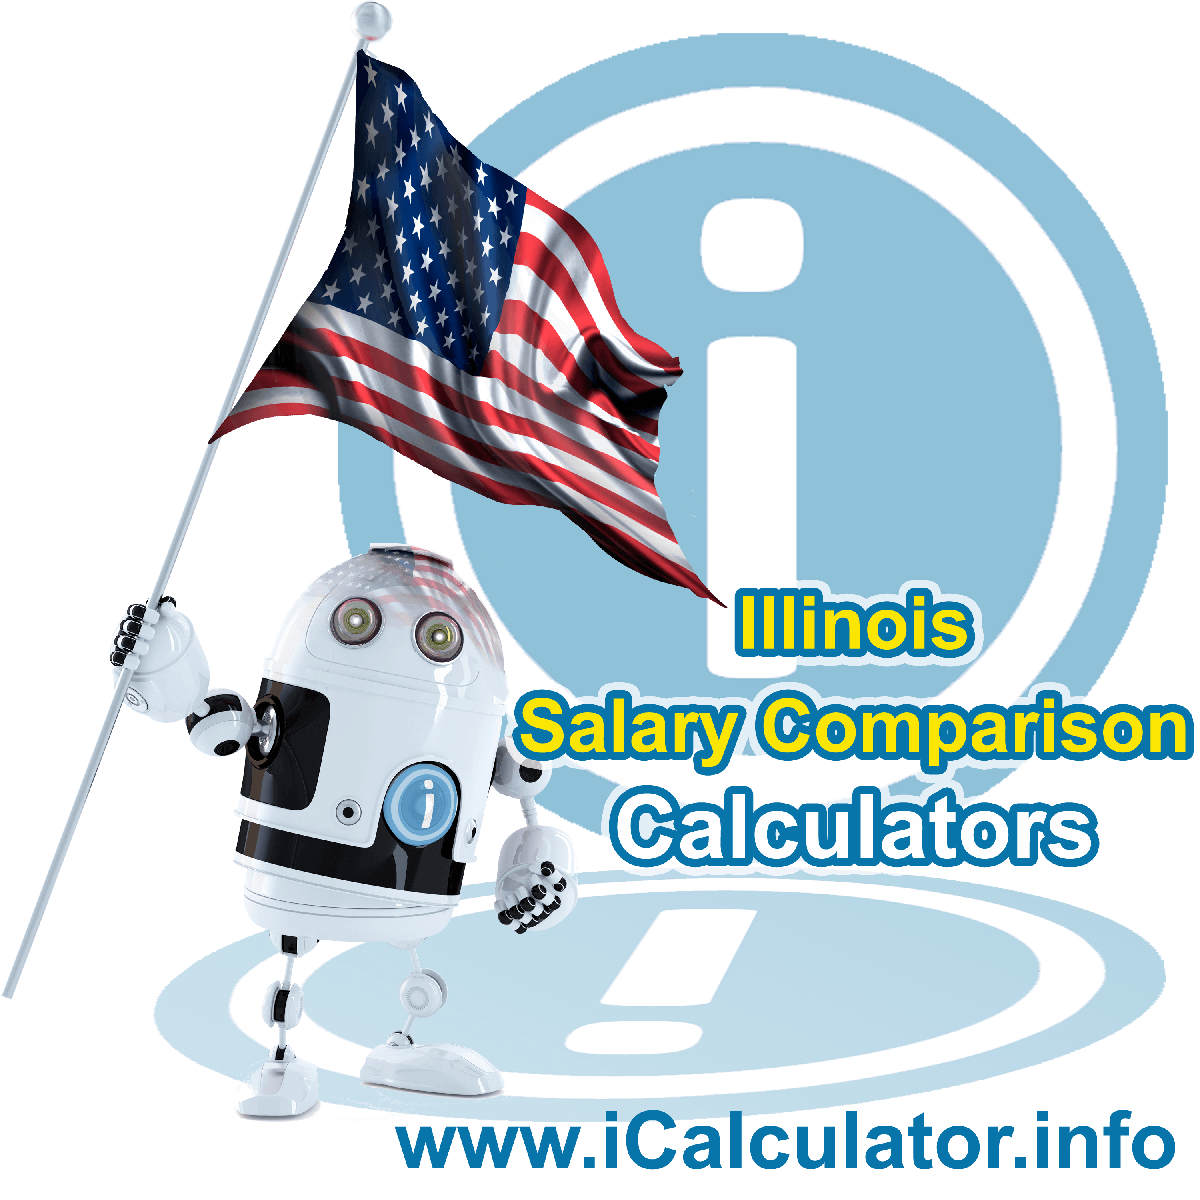 Illinois Salary Comparison Calculator 2021 | iCalculator™ | The Illinois Salary Comparison Calculator allows you to quickly calculate and compare upto 6 salaries in Illinois or between other states for the 2021 tax year and historical tax years. Its an excellent tool for jobseekers, pay raise comparison and comparison of salaries between different US States